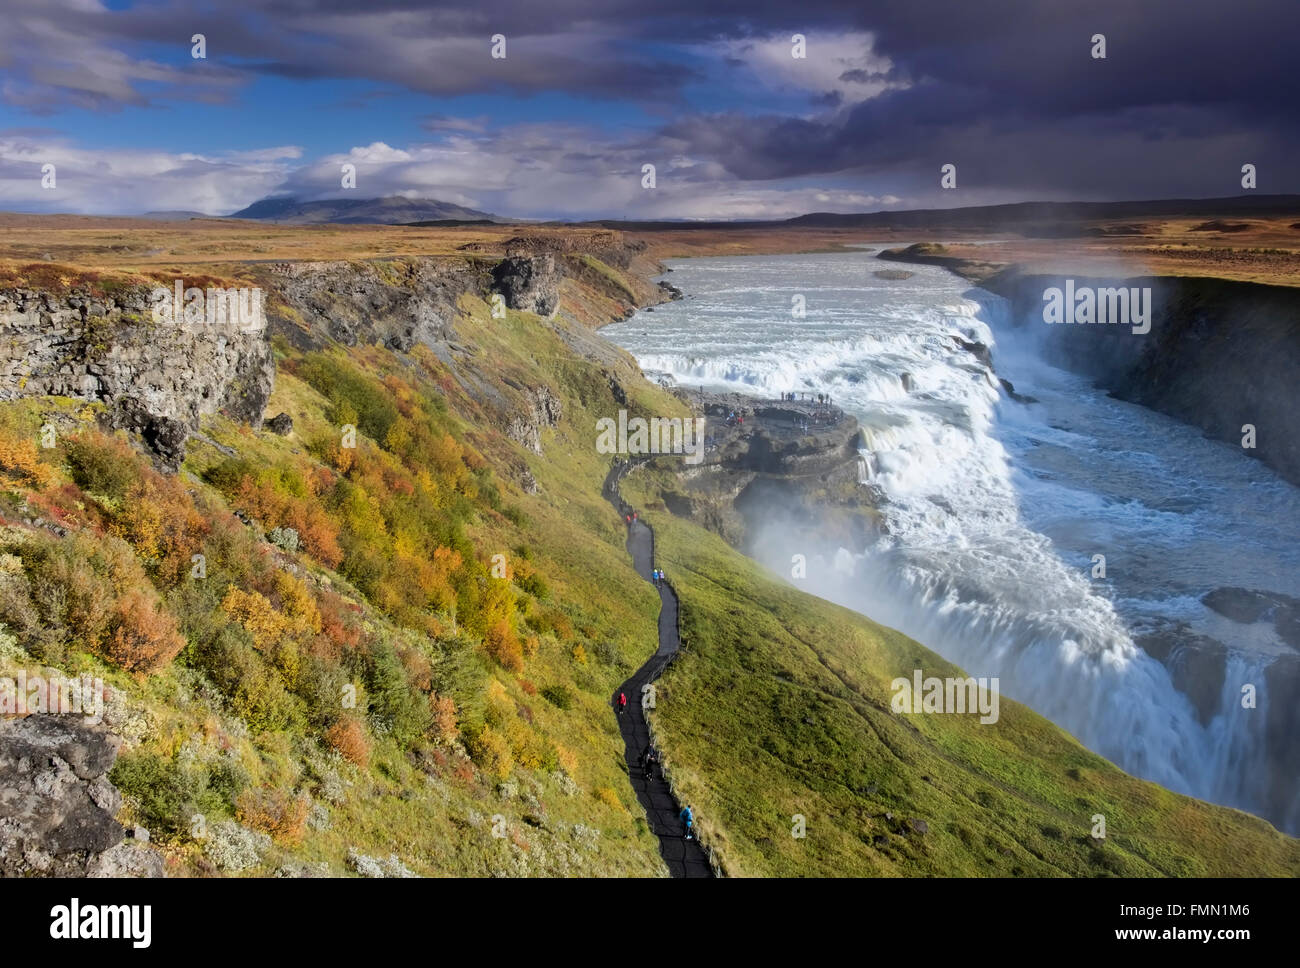 Gullfoss Waterfall in Autumn, located on the Hvítá River, Near Geysir, Southwest Iceland - Stock Image